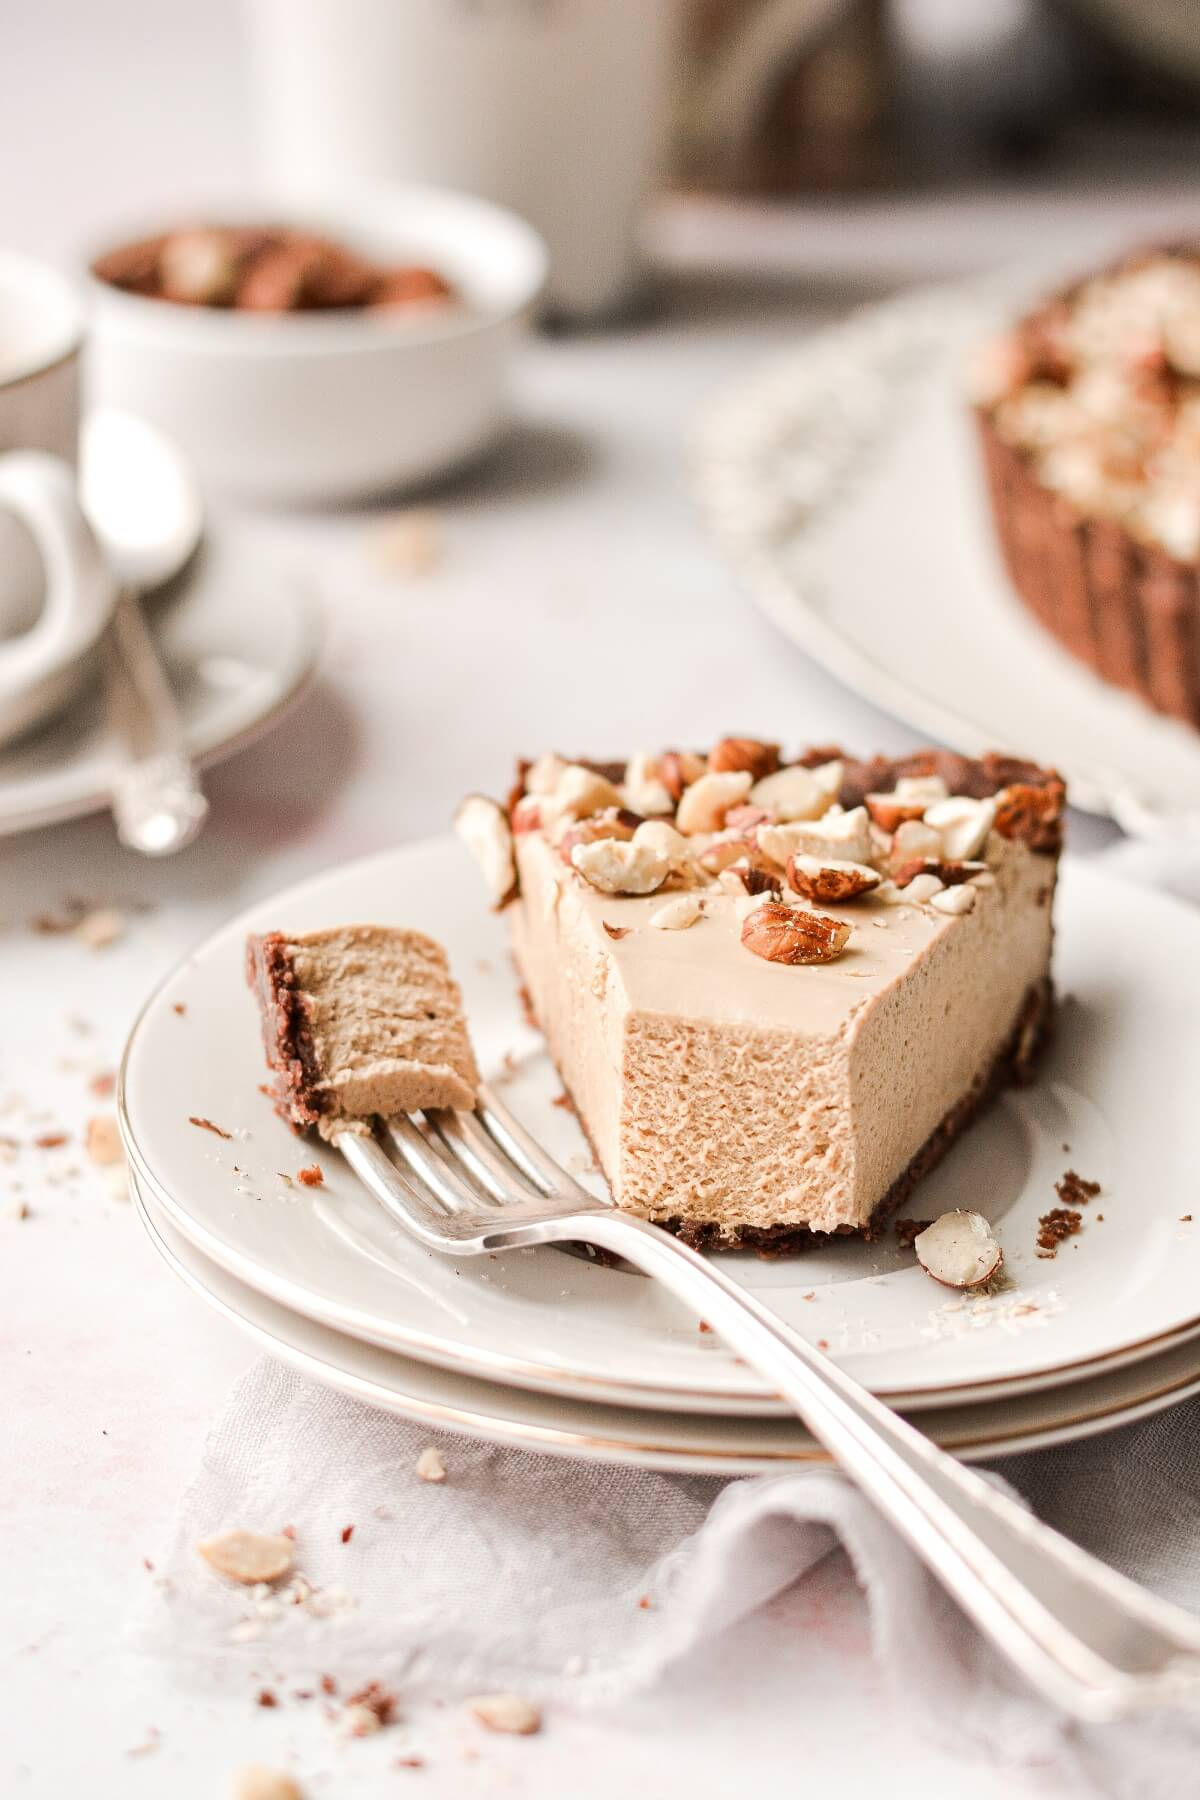 A slice of coffee cream tart with a bite taken.